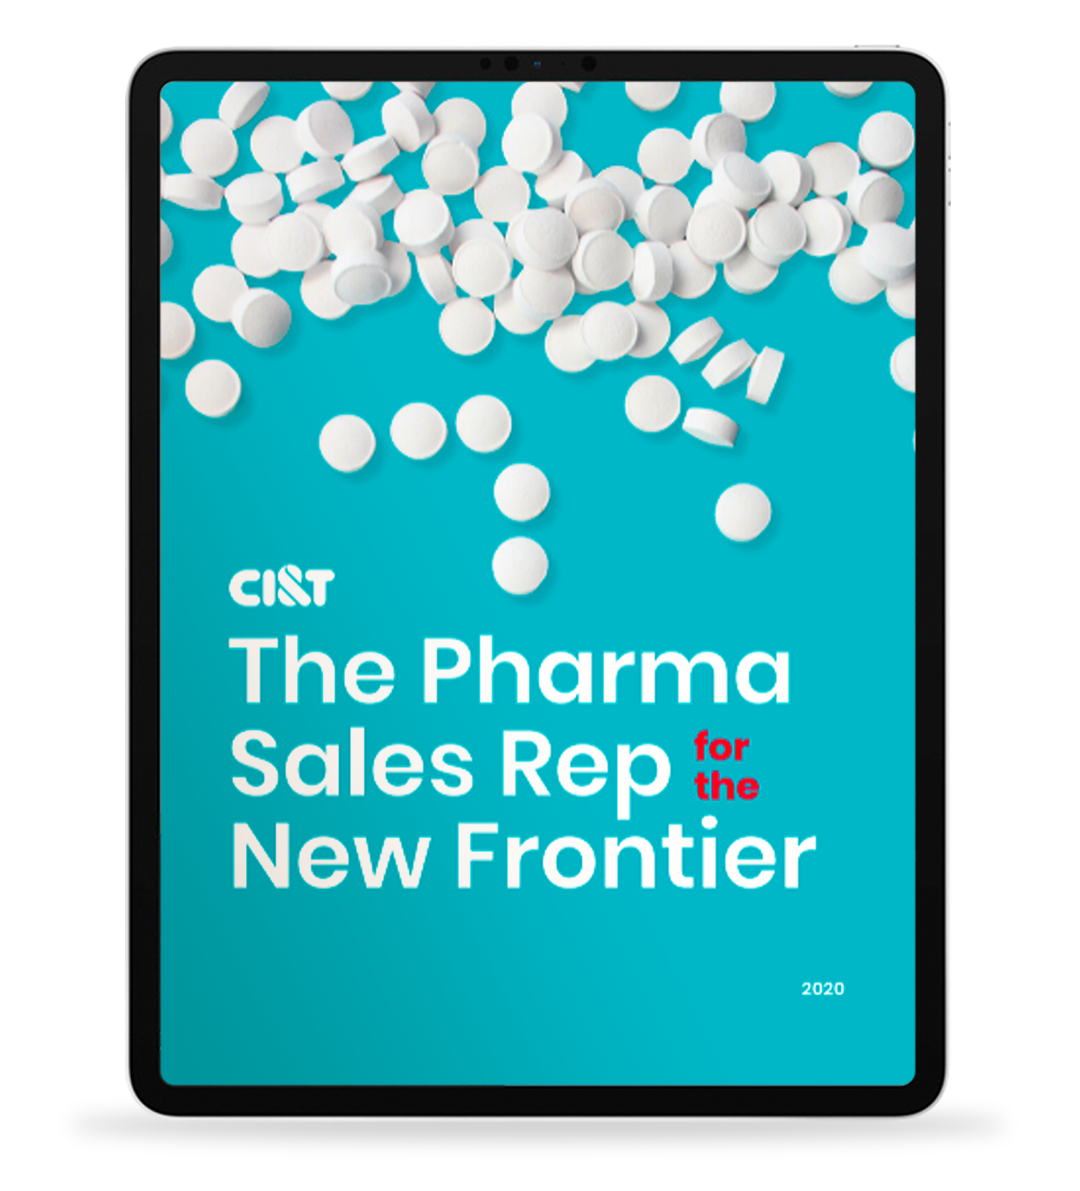 The Pharma Sales Rep For The New Frontier Whitepaper Cover